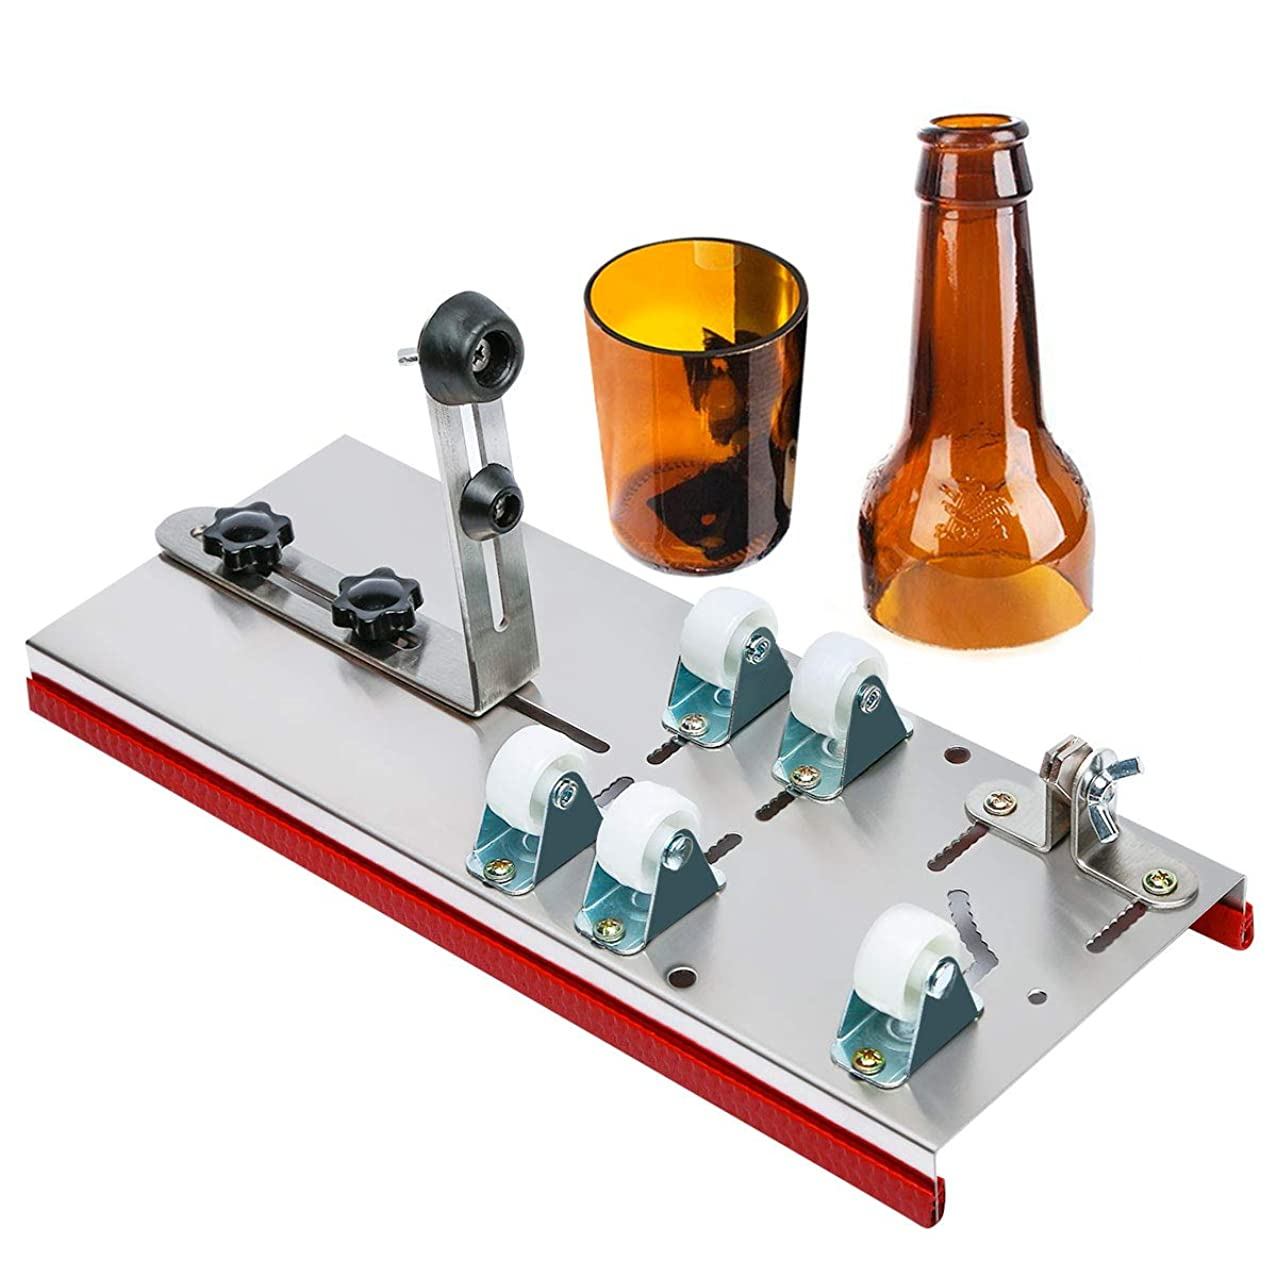 Glass Bottle Cutter, ZOMOM DIY Cutting Machine Wine Bottle Cutting Tool Adjust Full Sized Bottle Cutter for Home Decor DIY Creating Wine Bottle Lamp, Wine Bottle Decorations (Stainless Steel)